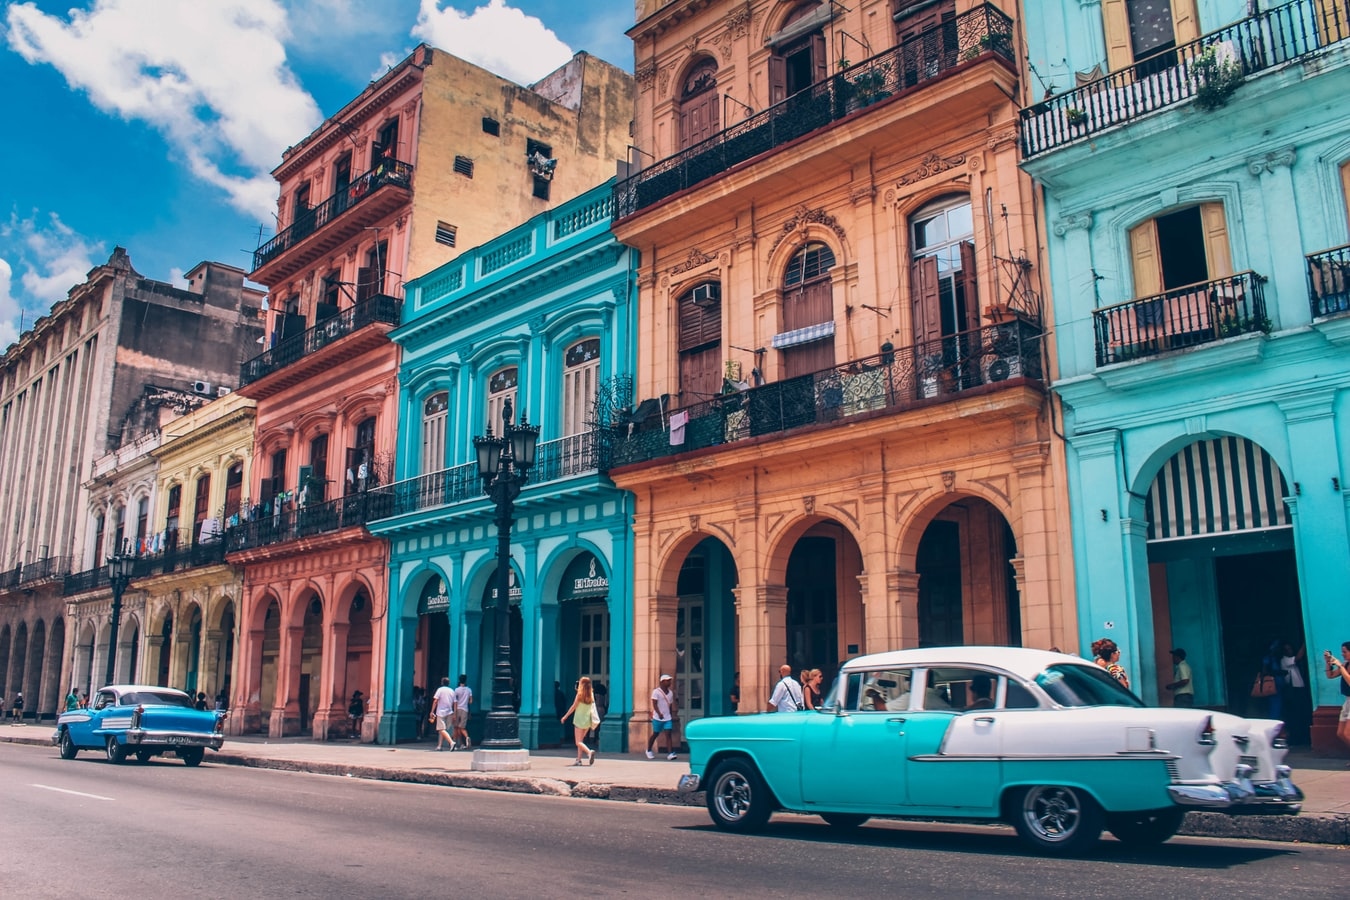 A colorful street with cars sitting out front in Havana, Cuba